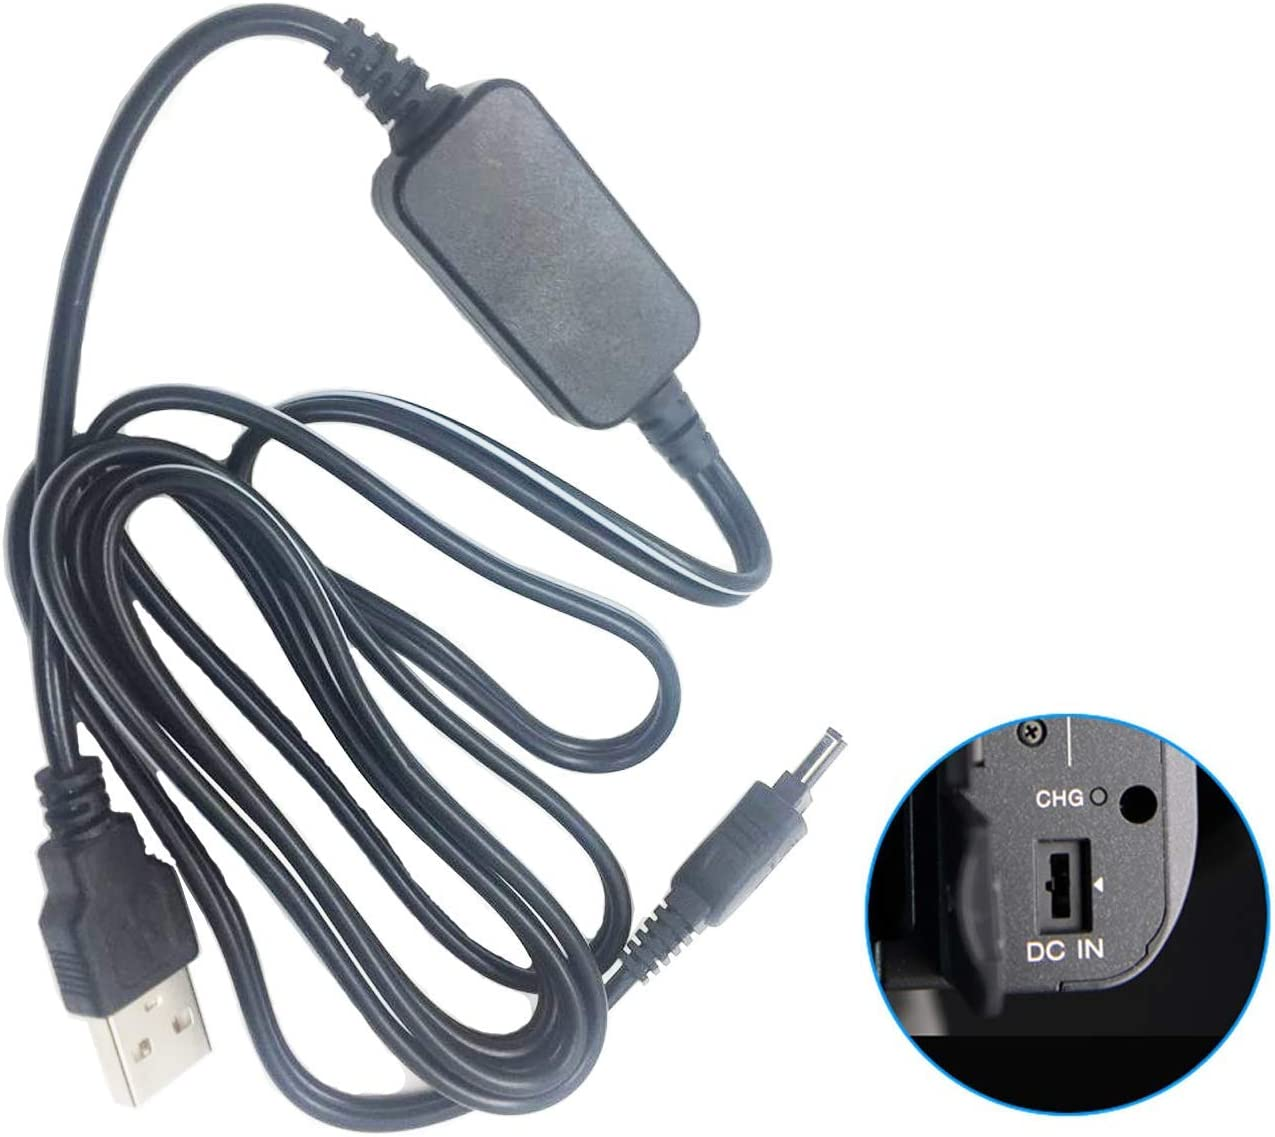 DCR-TRV8 DCR-TRV12 MiniDV Handycam Camcorder DCR-TRV10 USB Power Adapter Charger for Sony DCR-TRV6 DCR-TRV11